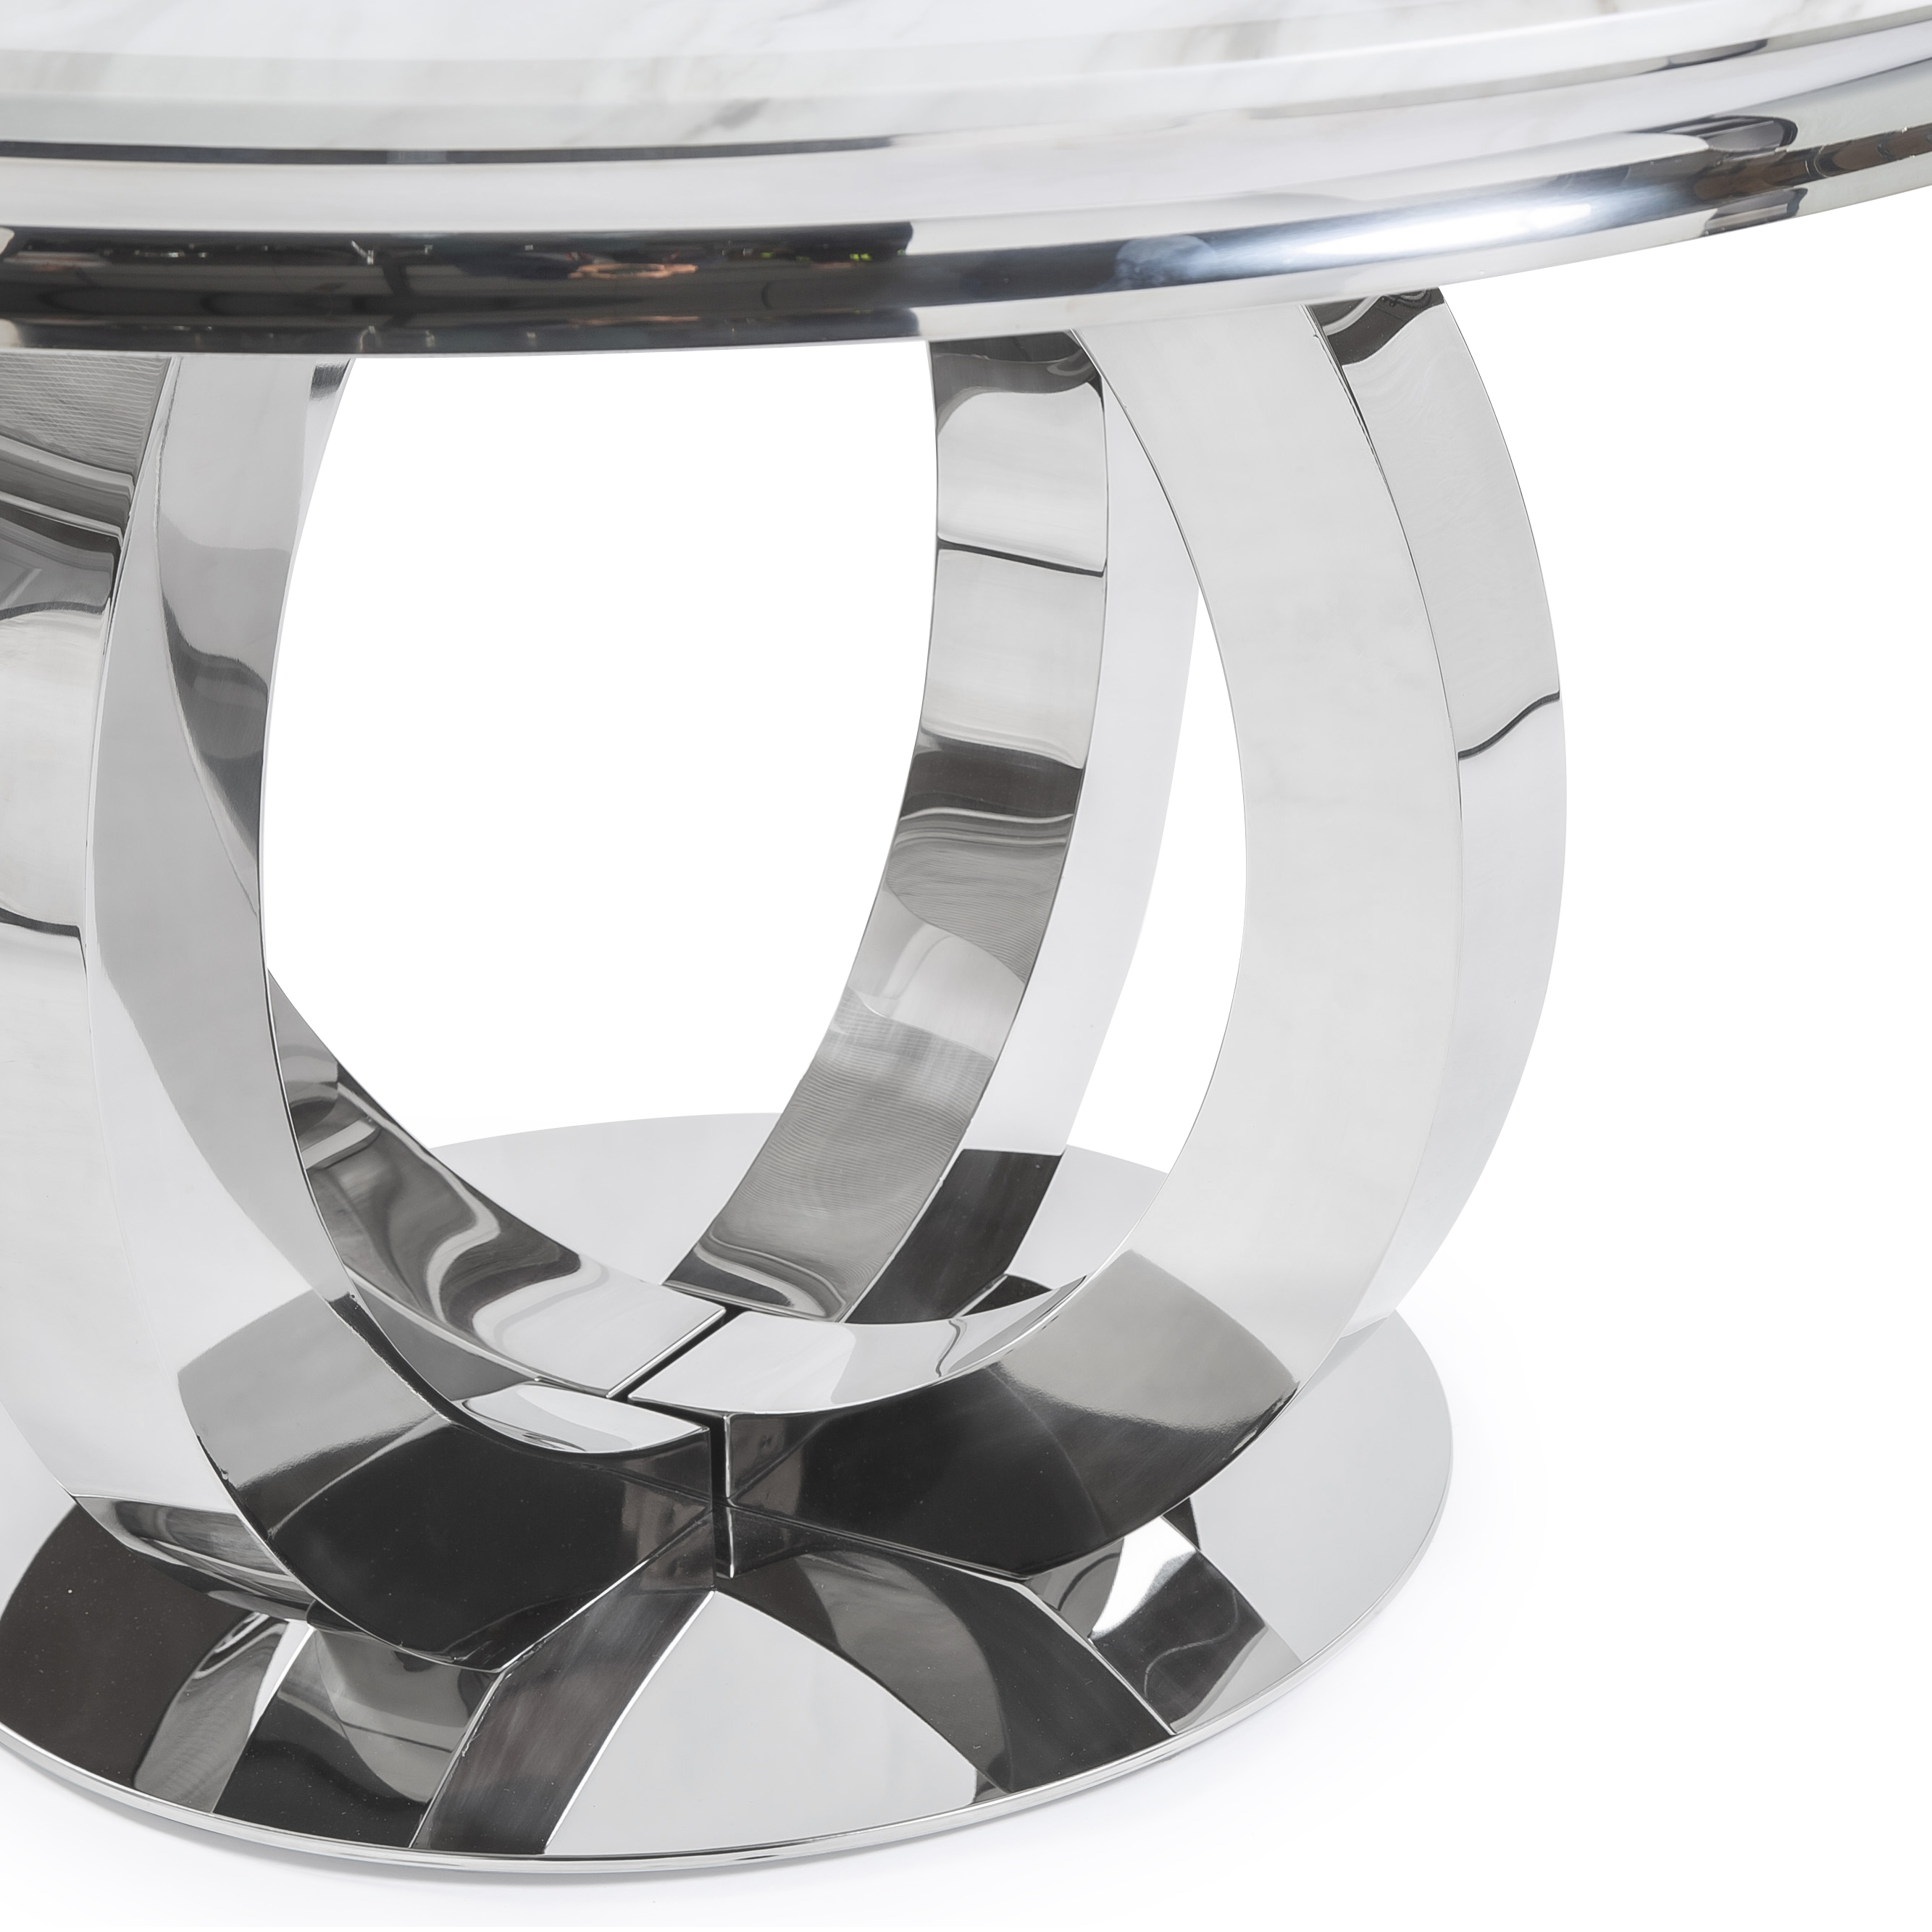 1.3M Polished Circular Stainless Steel Dining Table with White Marble Top